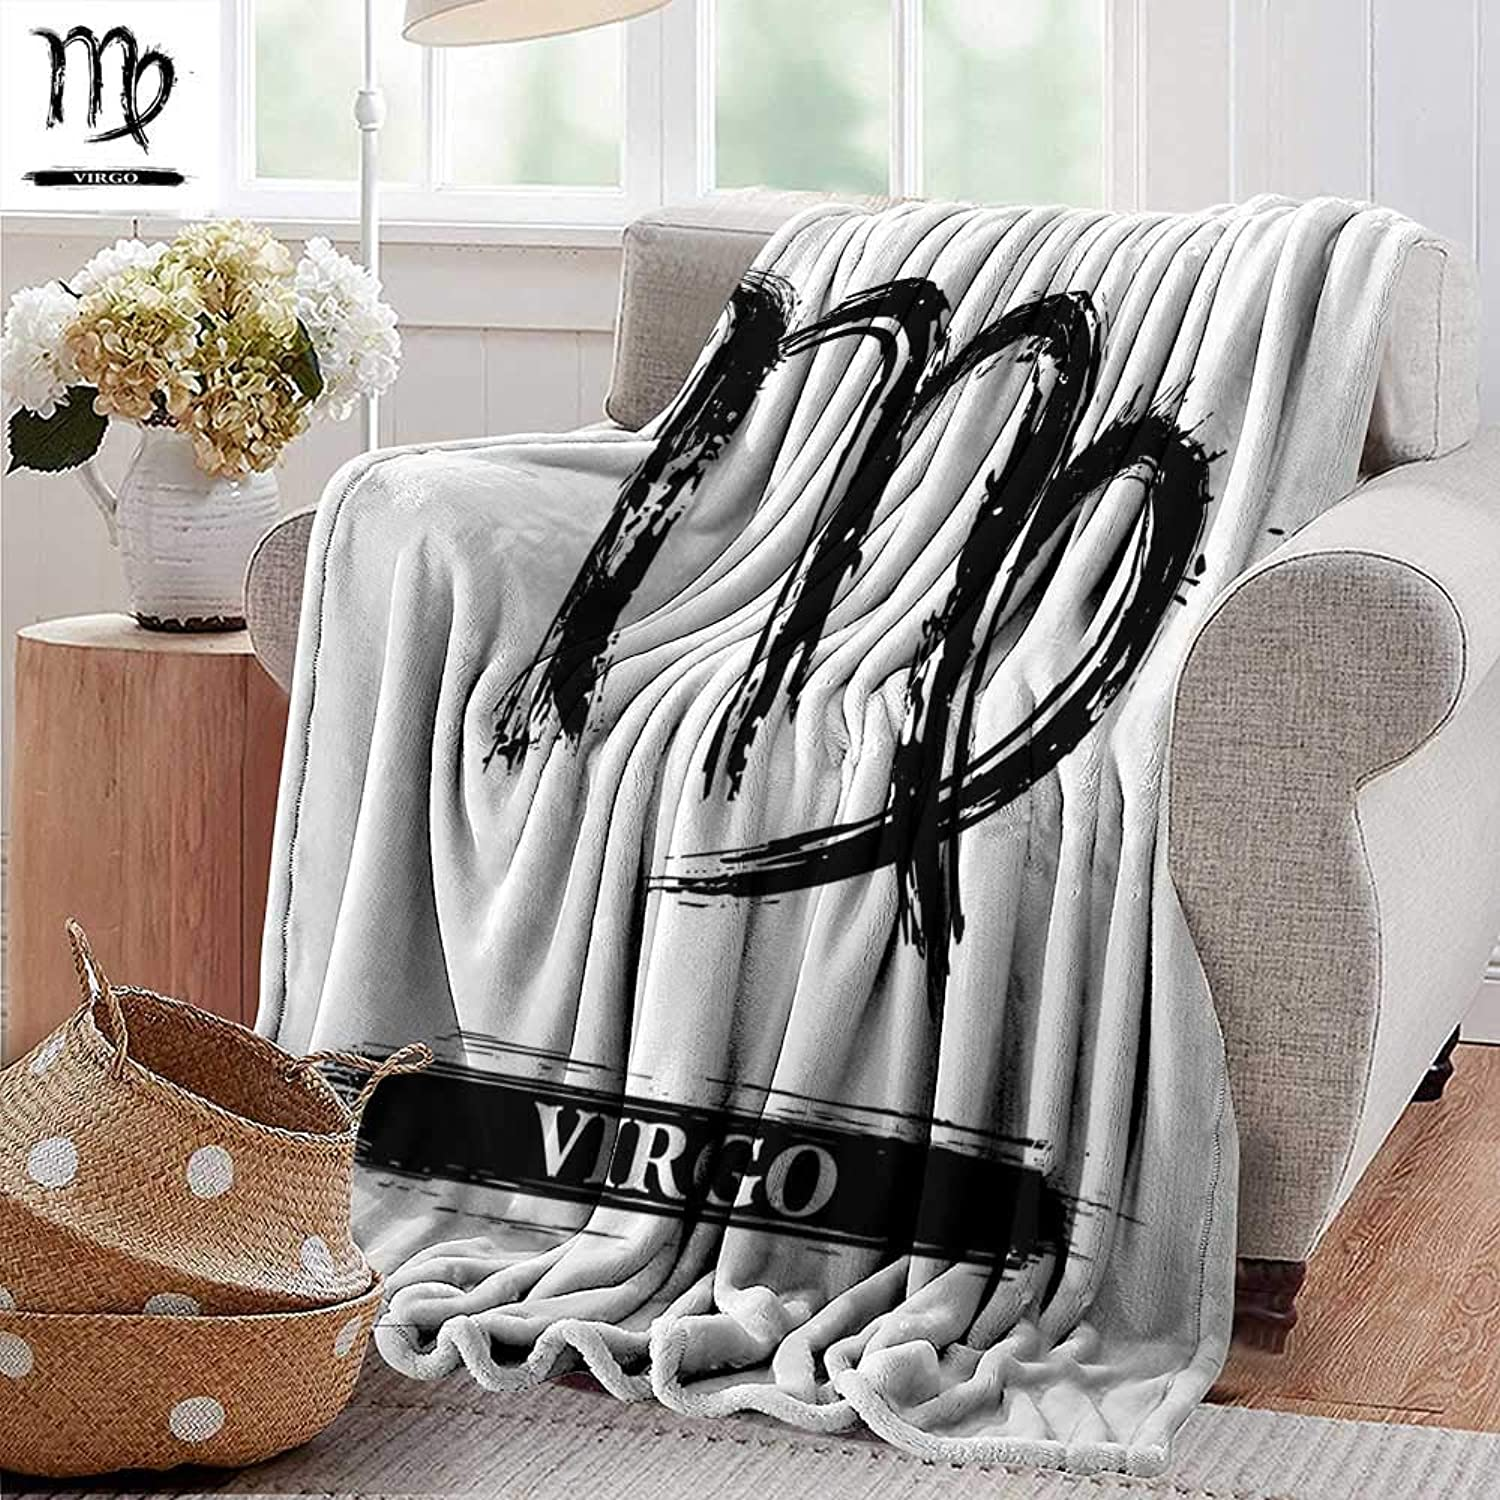 Weighted Blanket for Kids,Virgo,Virgo Sign with Black and White Monochrome Design Zodiac Symbol Constellation Print,Black White,Weighted Blanket for Adults Kids, Better Deeper Sleep 50 x60